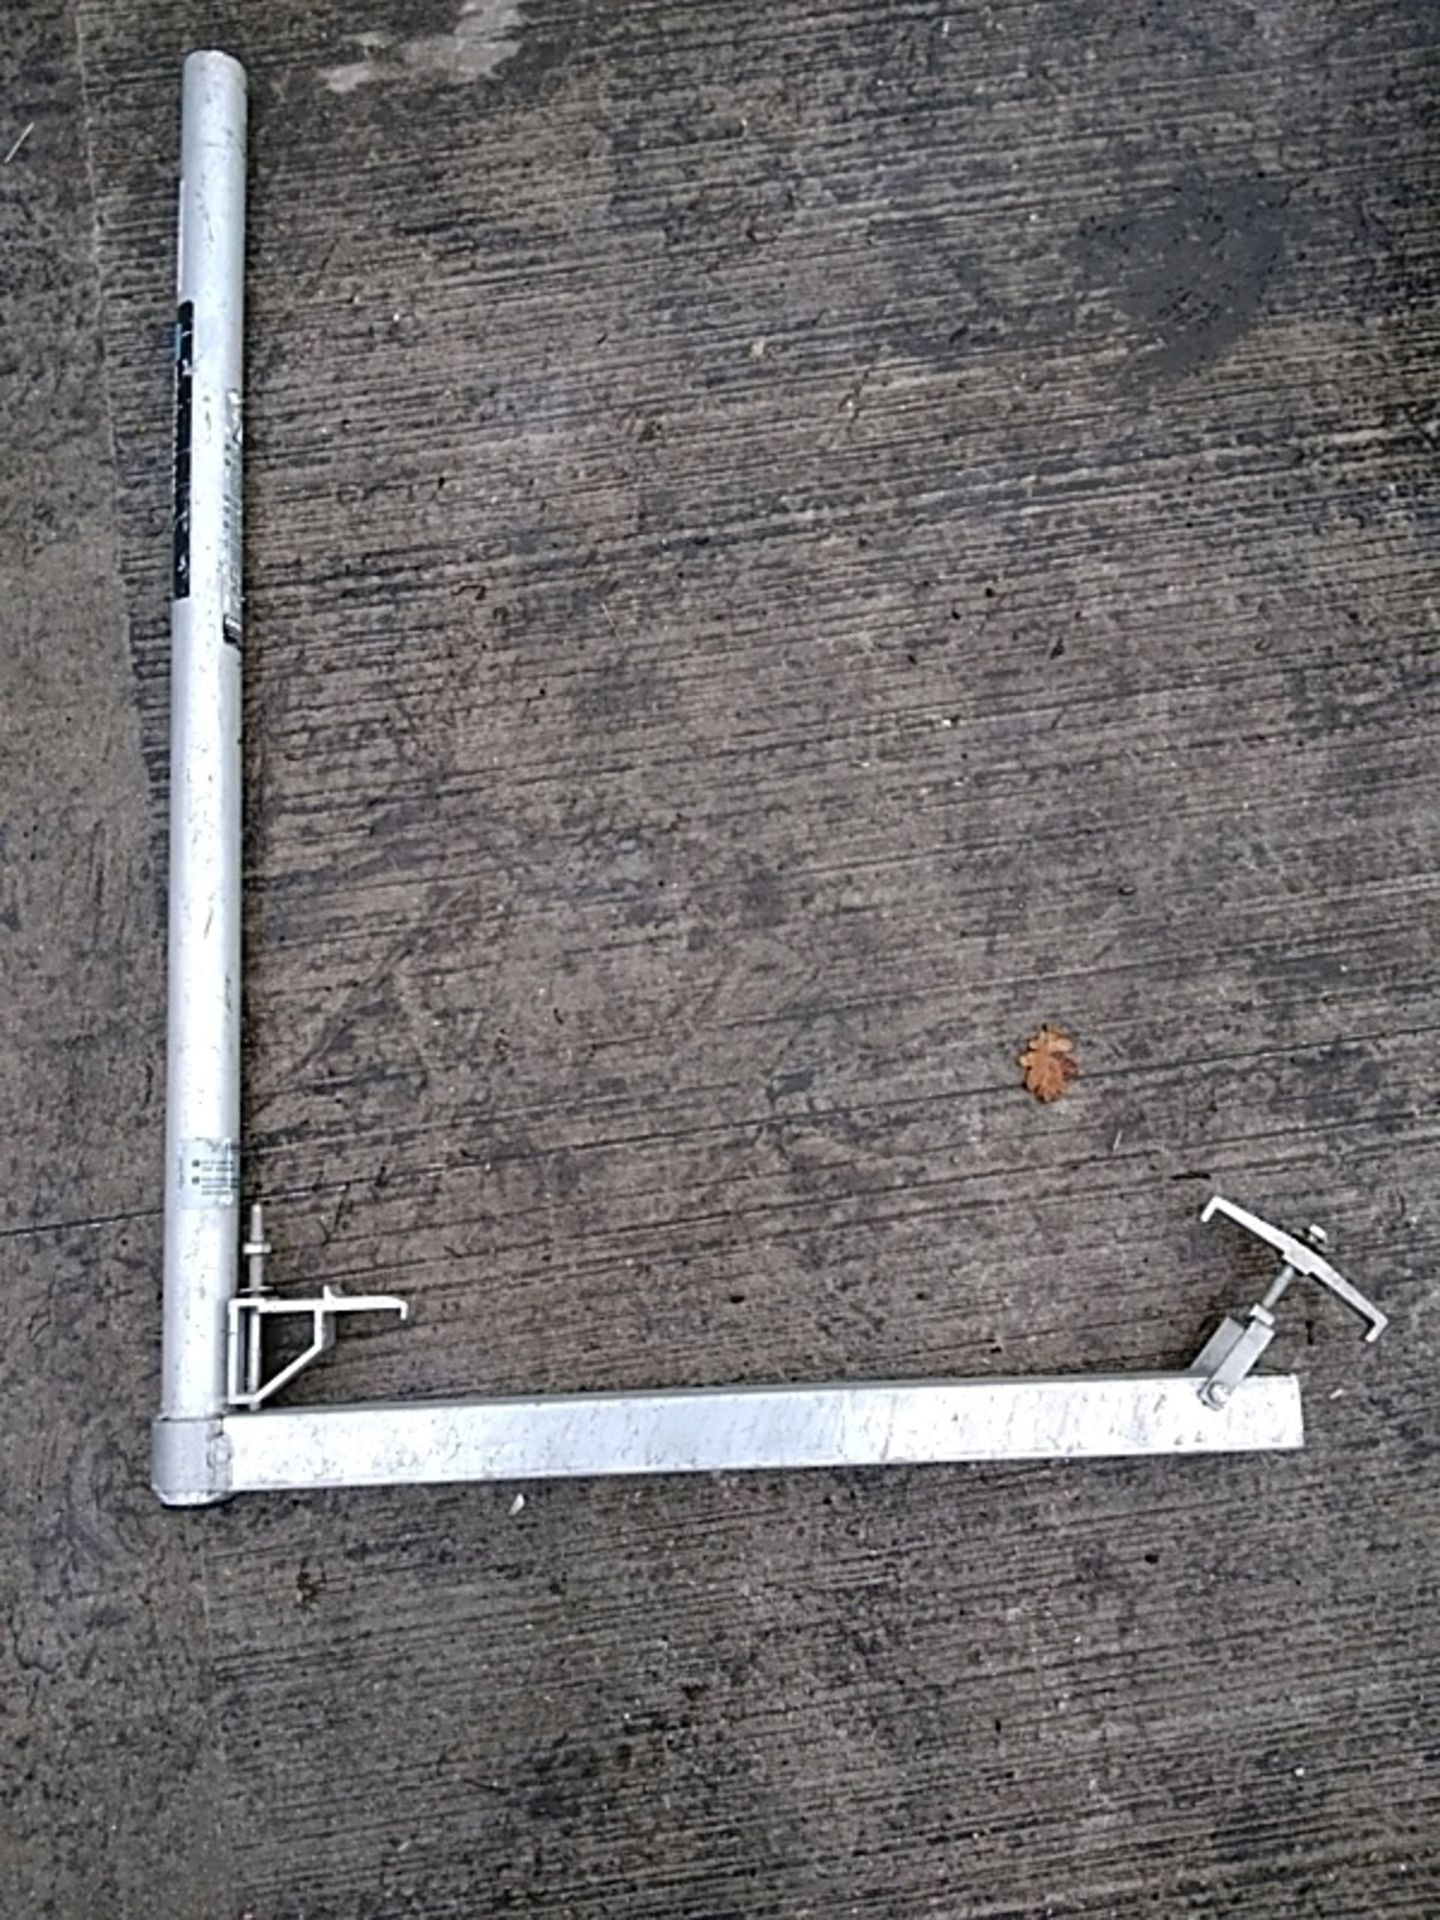 (33) Youngman Superpost Handrail Post for use with Superstars